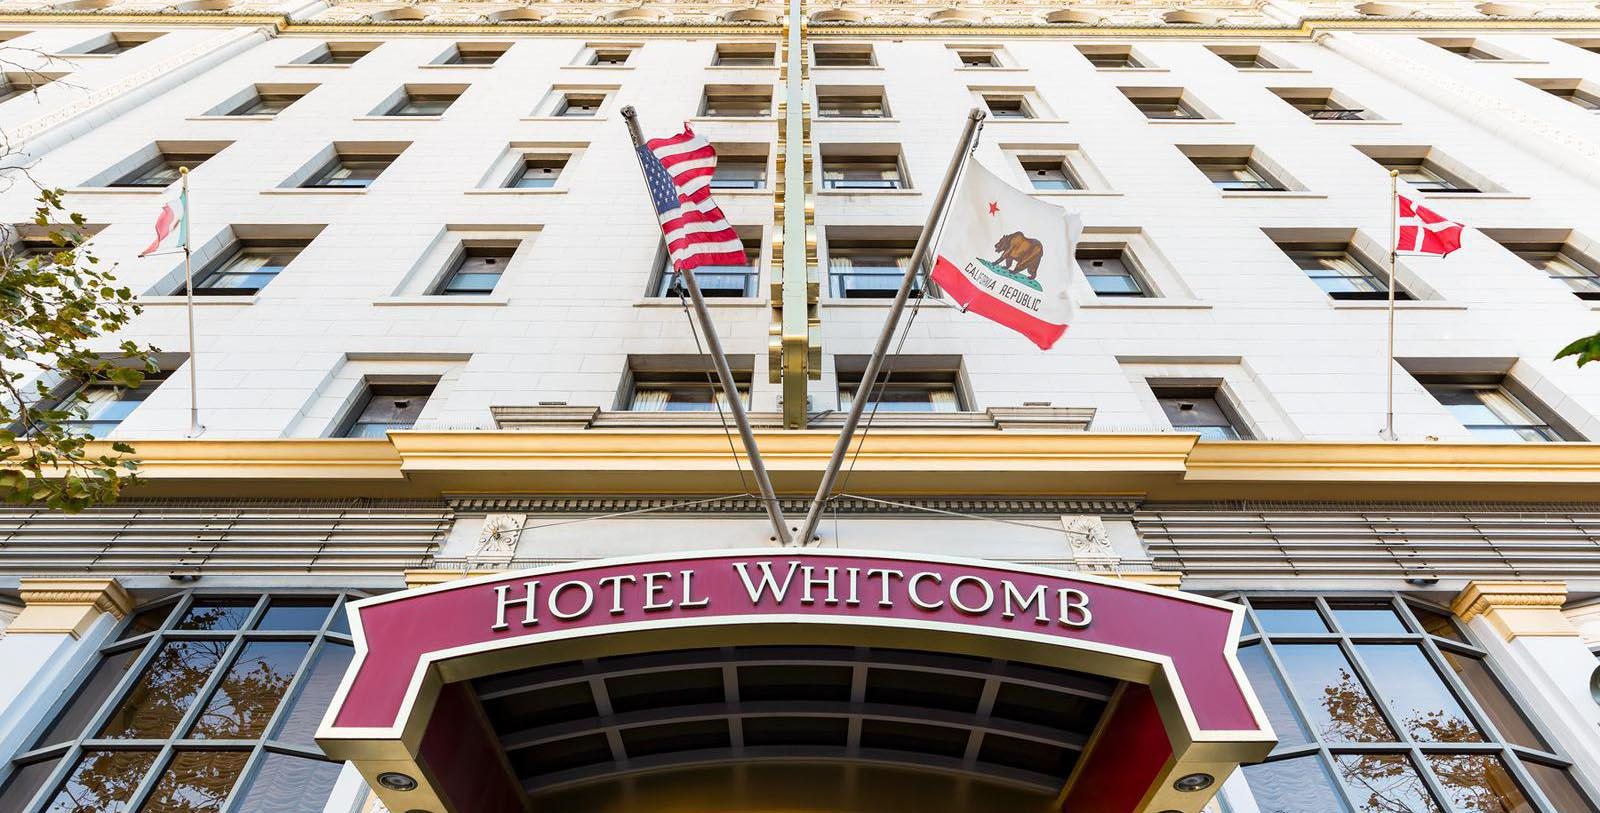 Image of Hotel Exterior, Hotel Whitcomb in San Francisco, California, 1916, Member of Historic Hotels of America, Special Offers, Discounted Rates, Families, Romantic Escape, Honeymoons, Anniversaries, Reunions